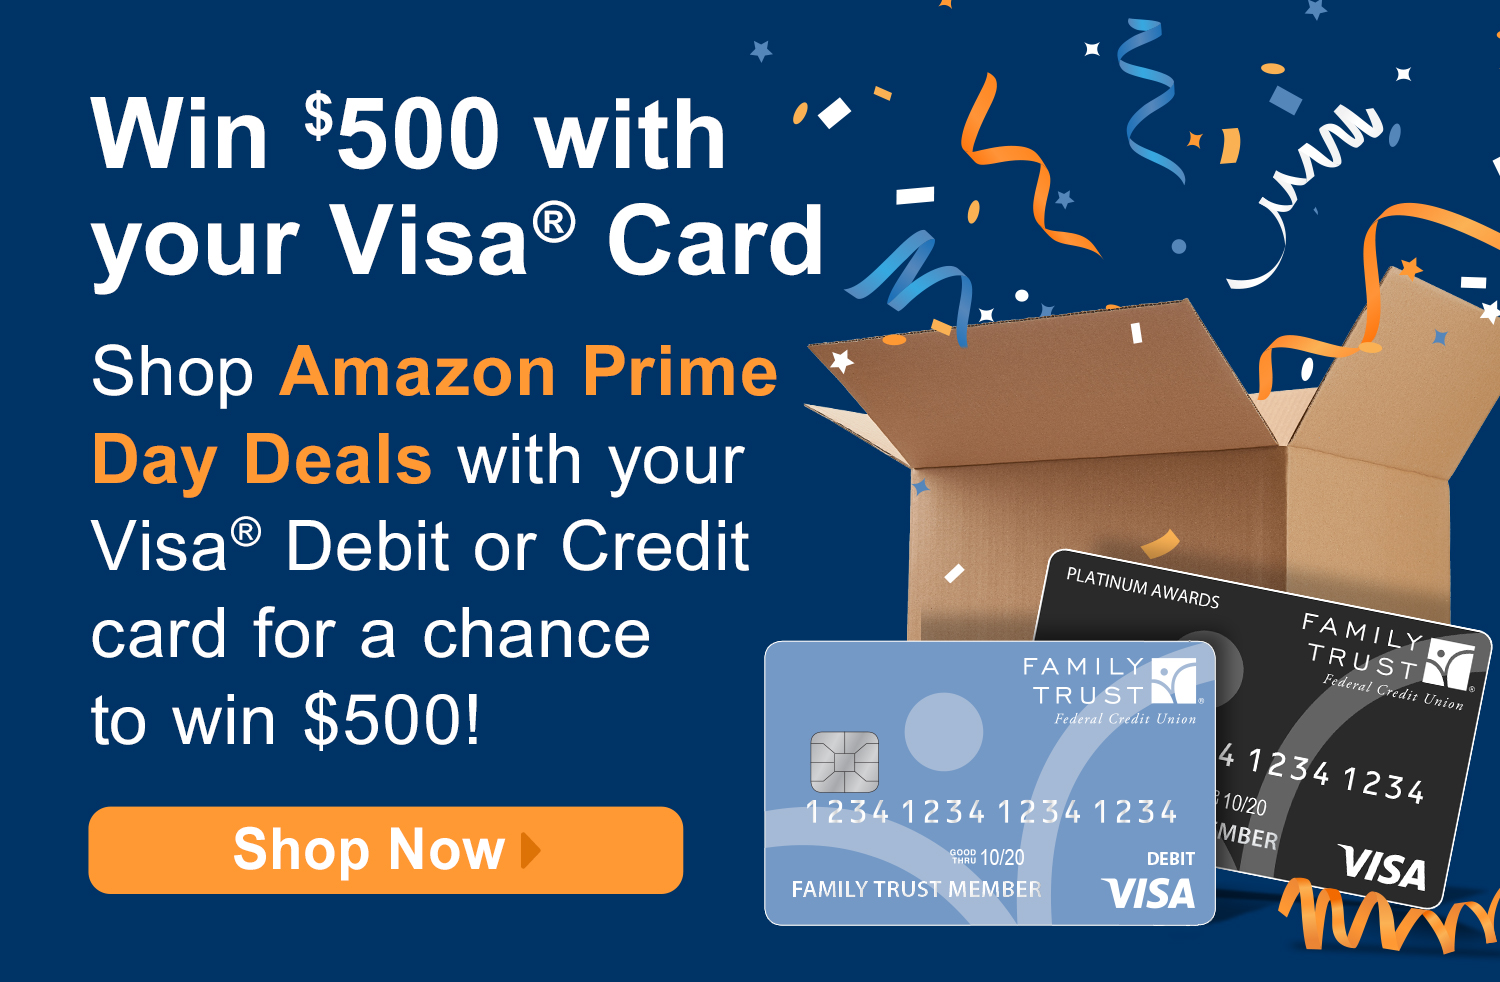 Amazon Prime Day $500 Giveaway